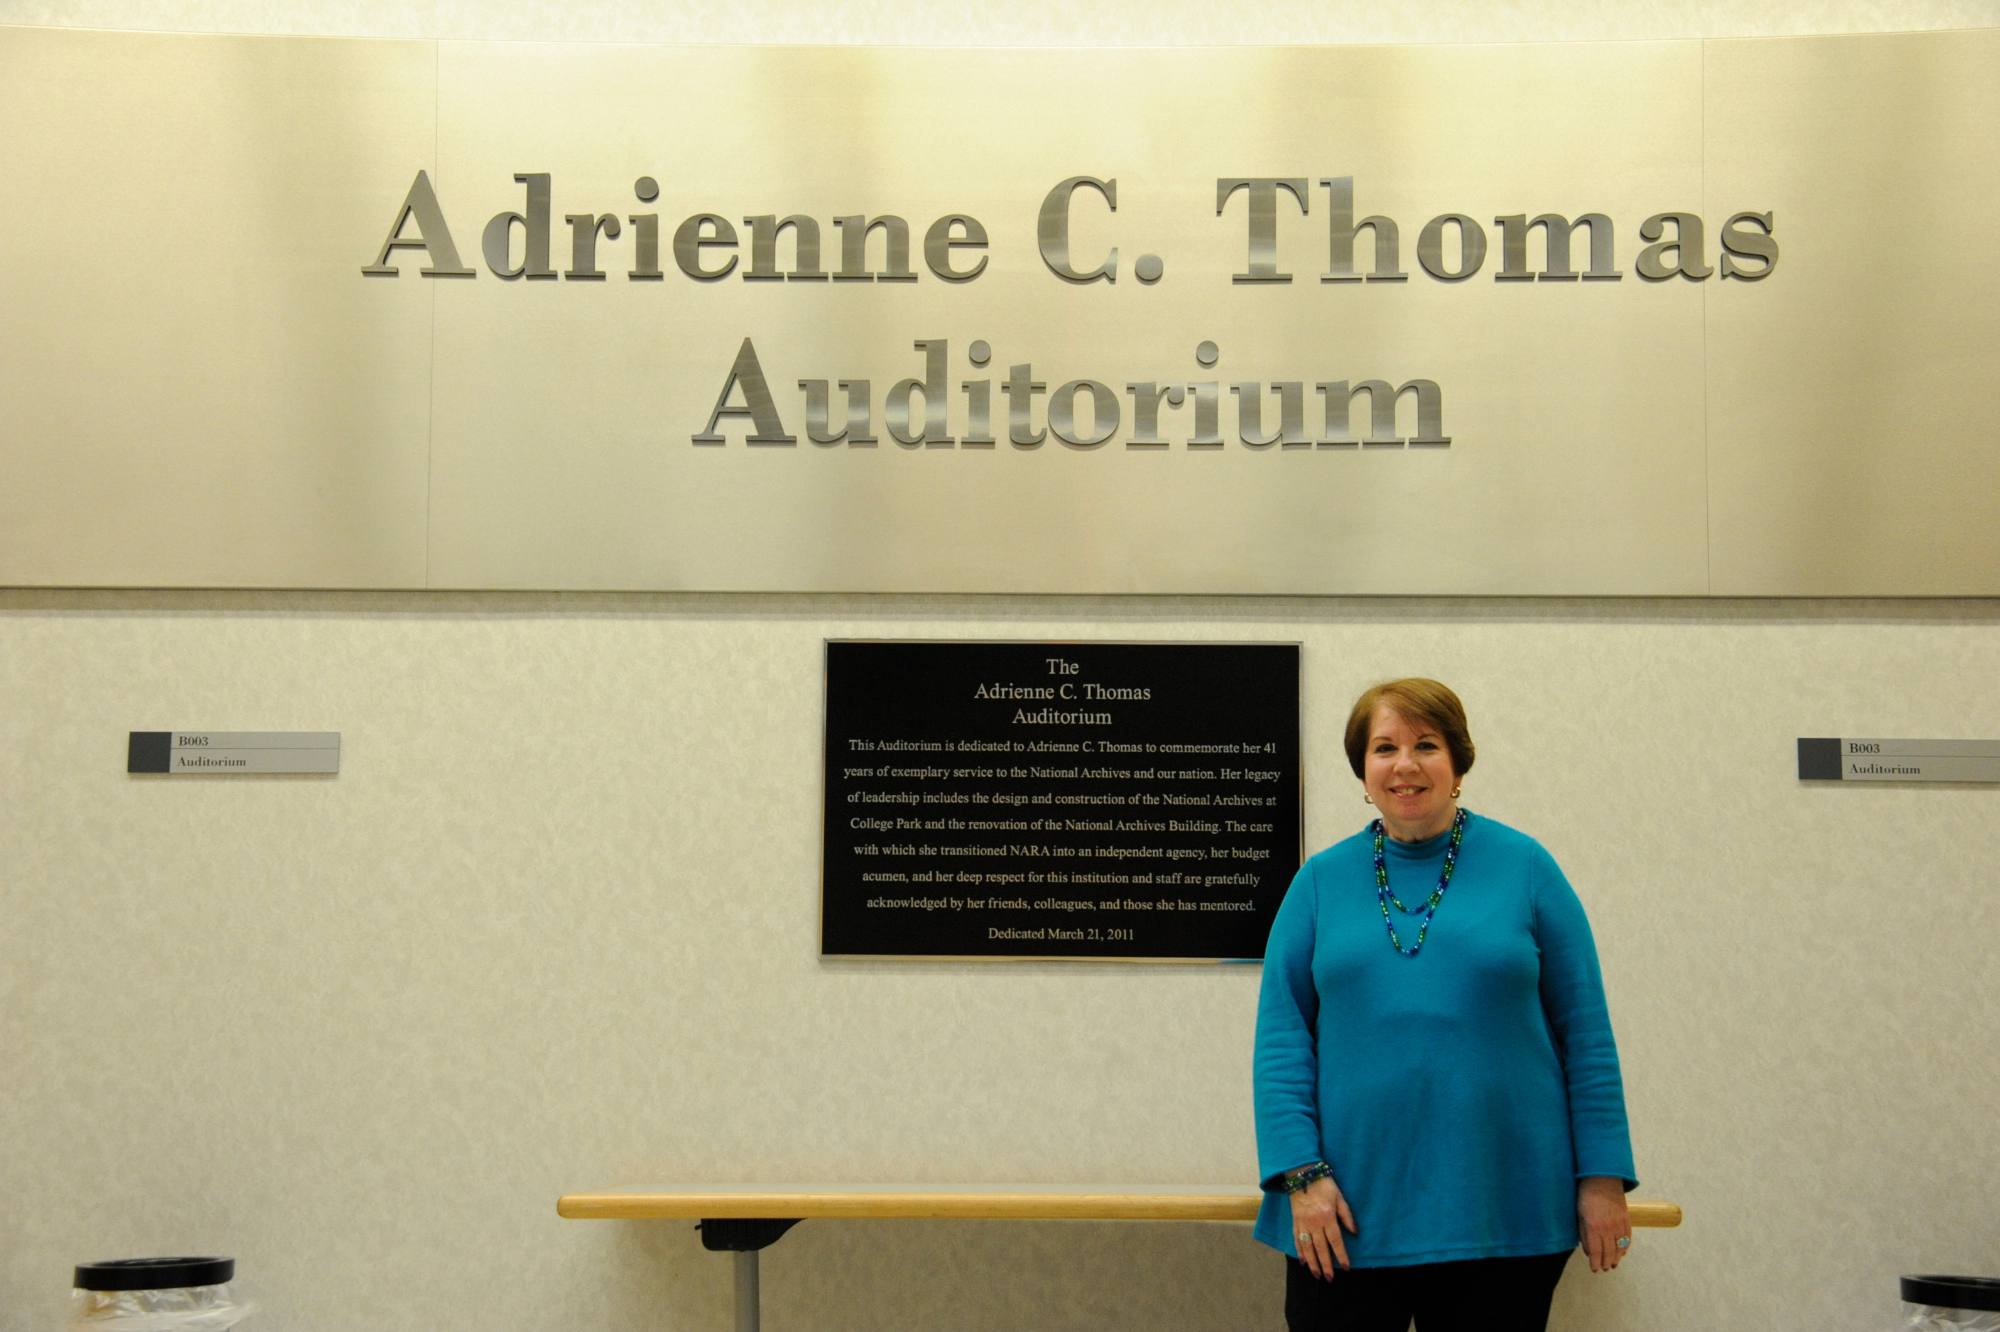 Adrienne C. Thomas Auditorium